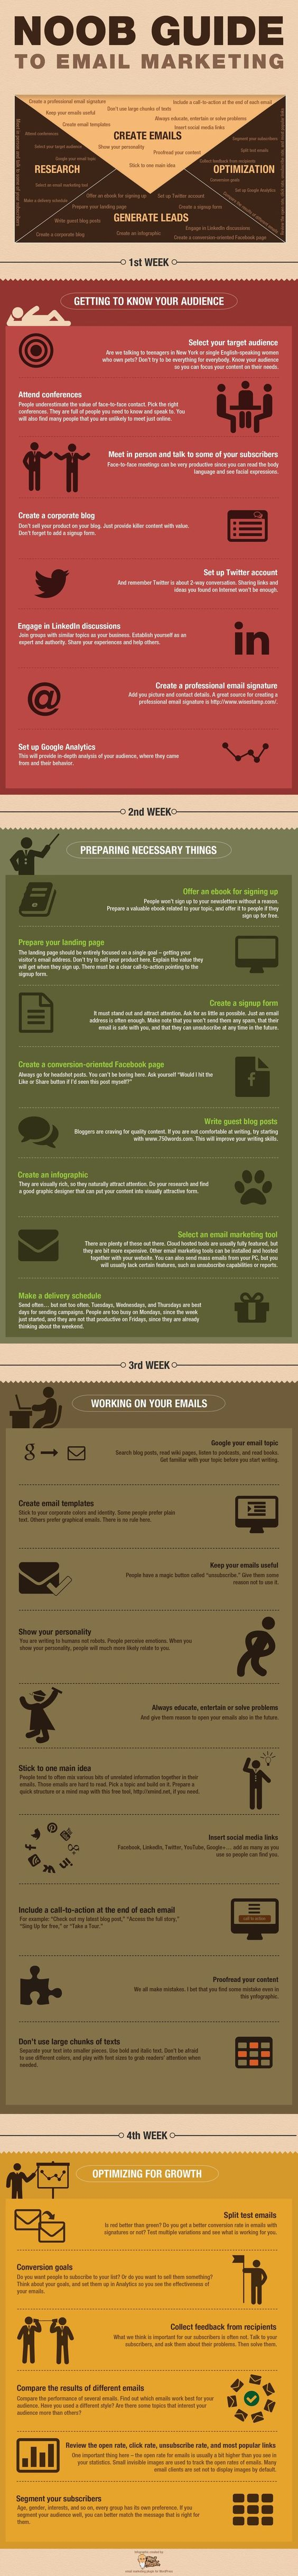 """EMAIL MARKETING -  """"Noob Guide to #Email Marketing Infographic""""."""